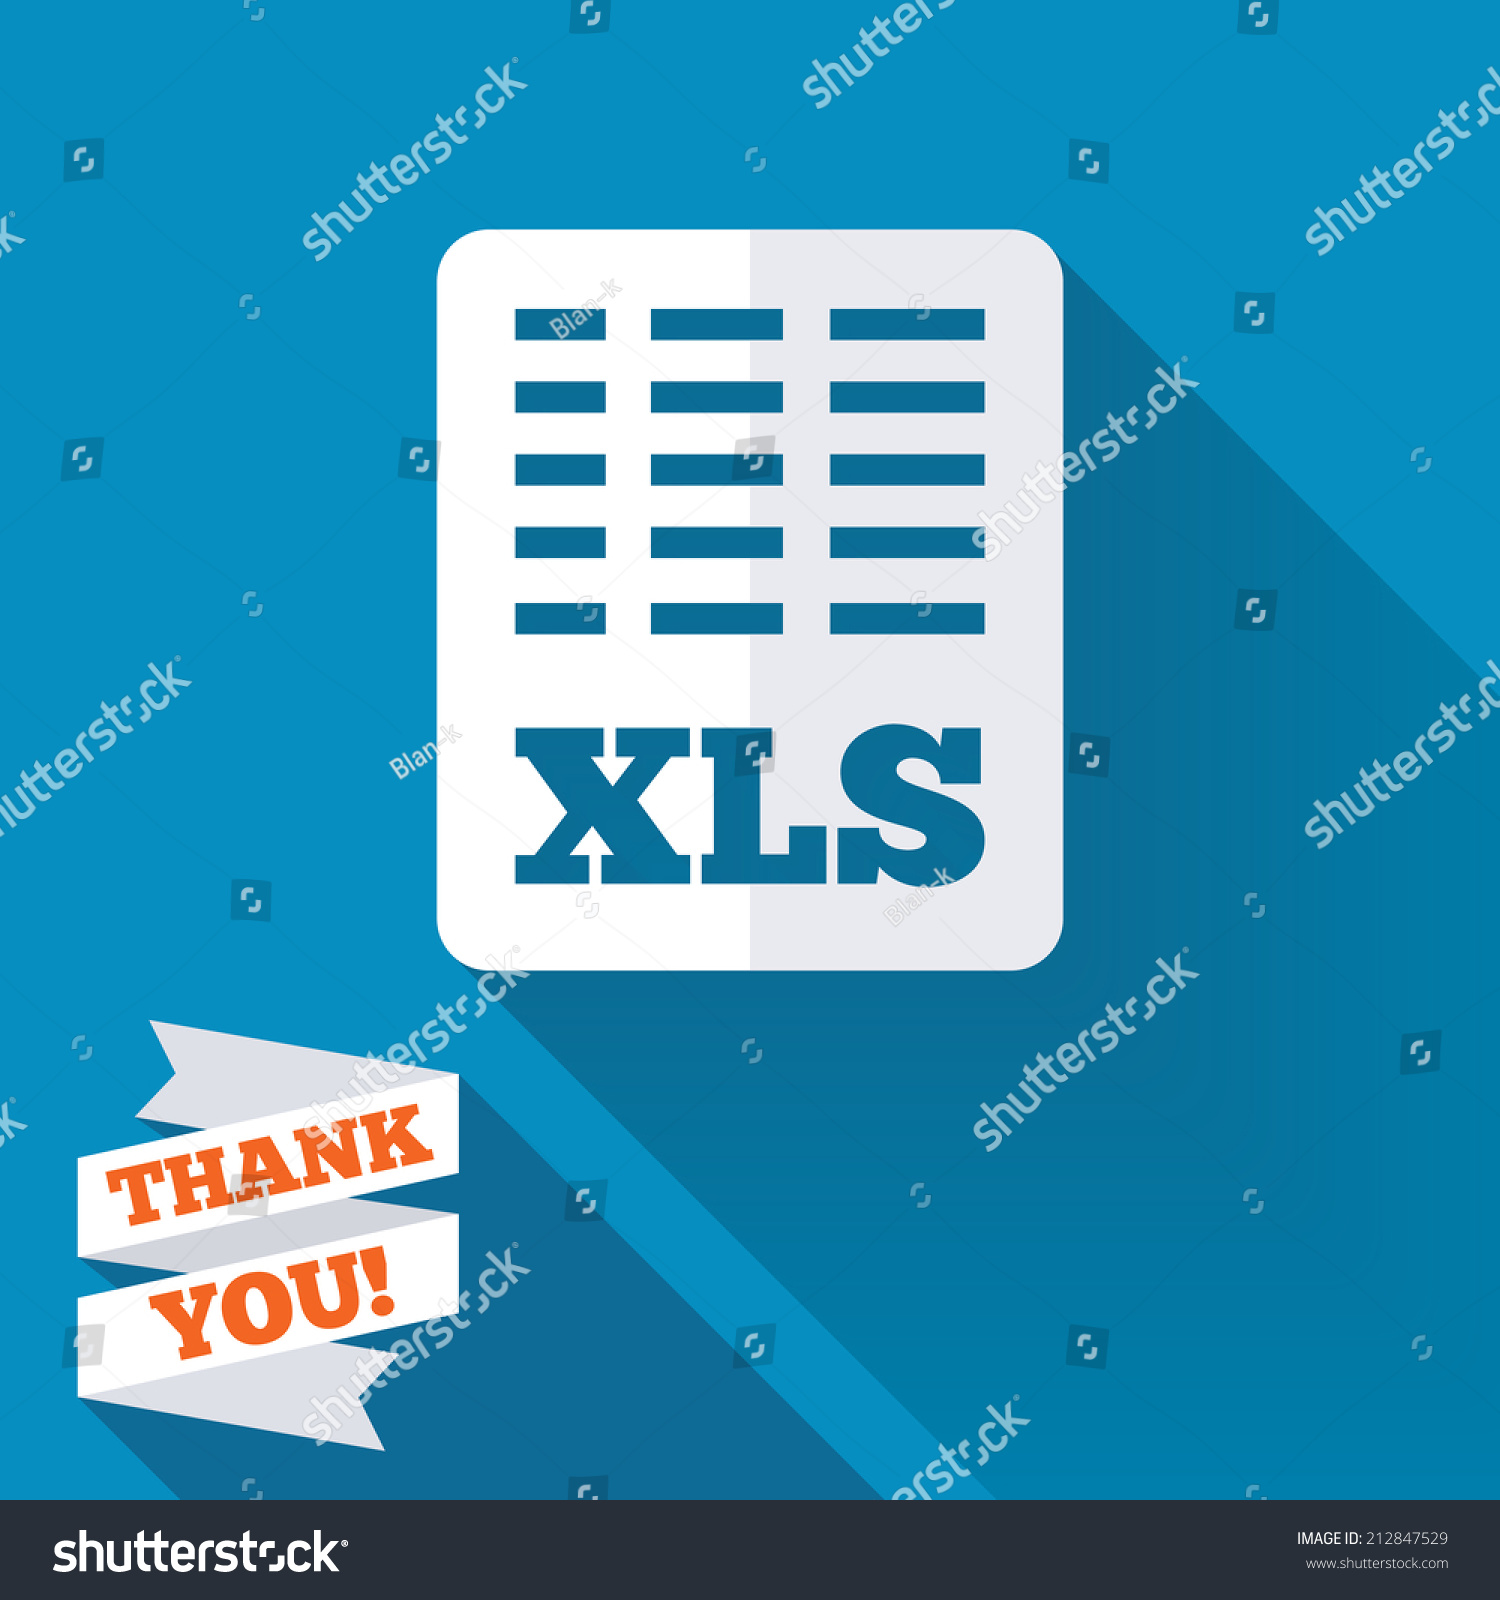 Excel File Document Icon Download Xls Stock Illustration 212847529